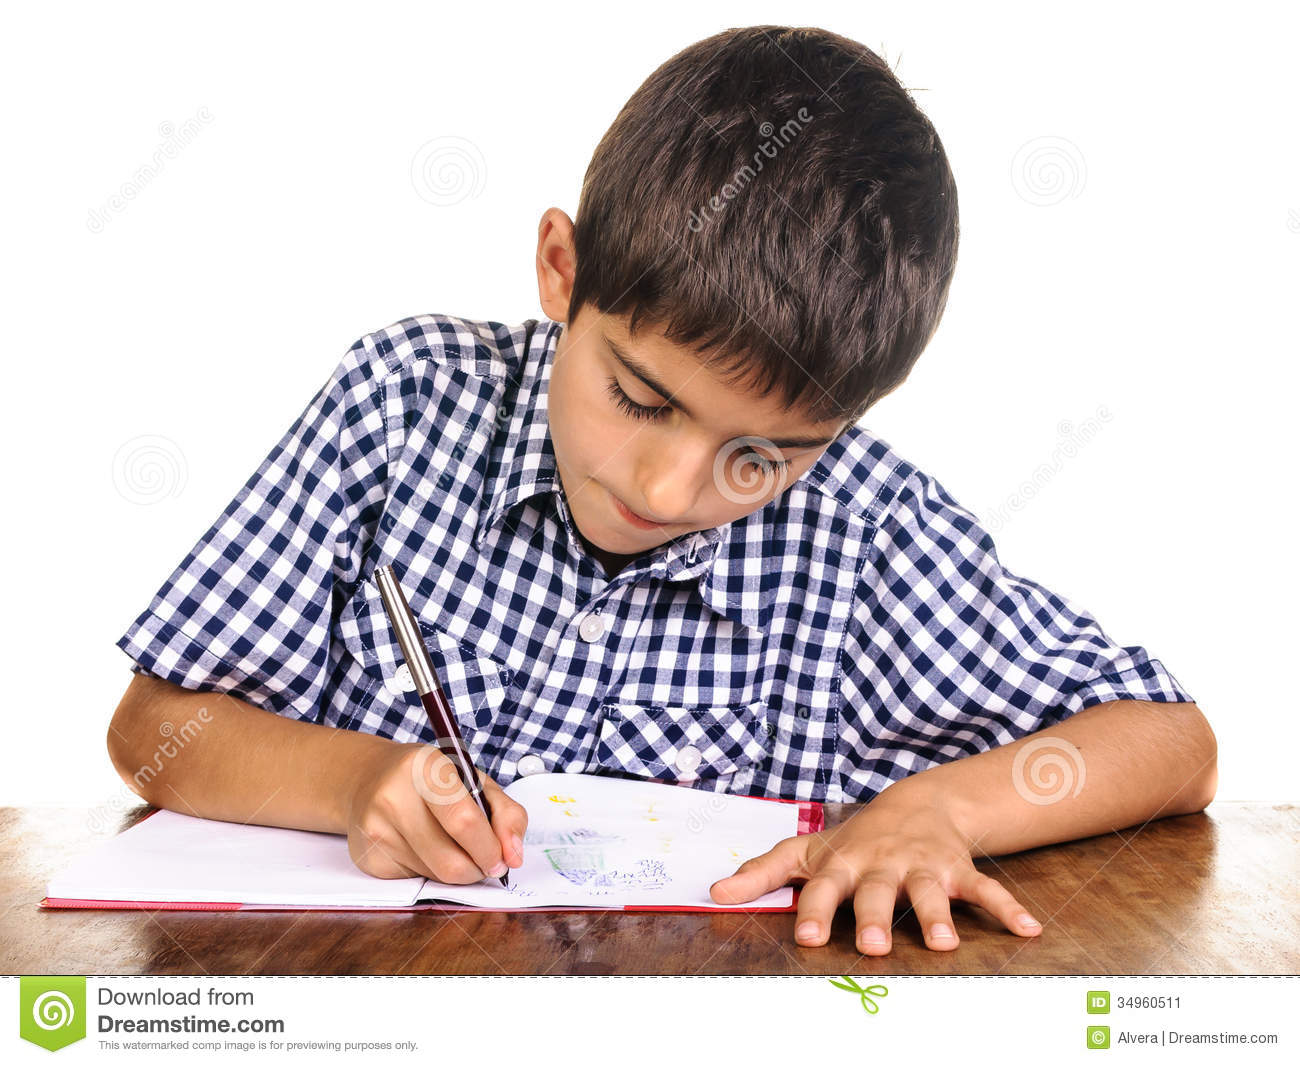 do homework essay How to get motivated to do homework and fight your laziness excluding distractions is easy and useful if you are overcome by laziness, it will be difficult to find time and motivation to do homework  an essay is just another type of academic writing when you are assigned this sort of work, you should mind its: structure sources to be used.